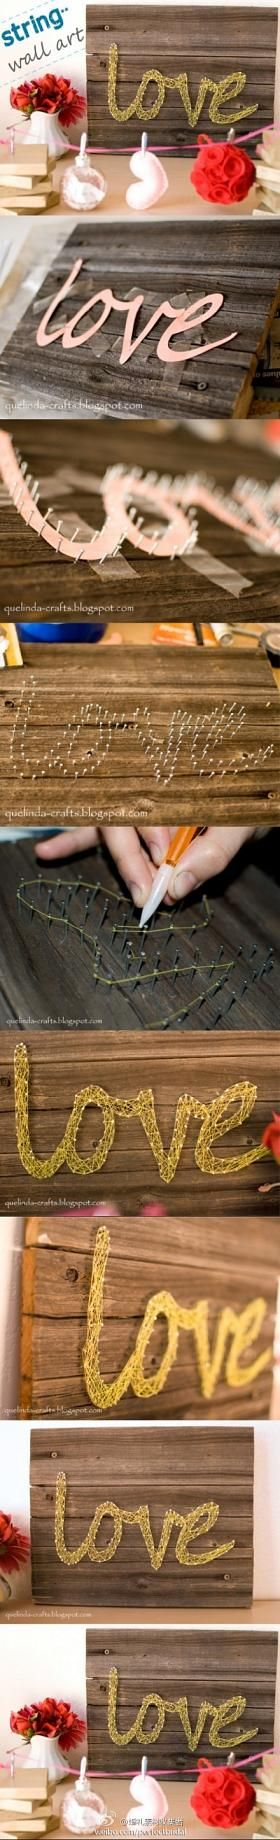 Recycled Wood String Art diy